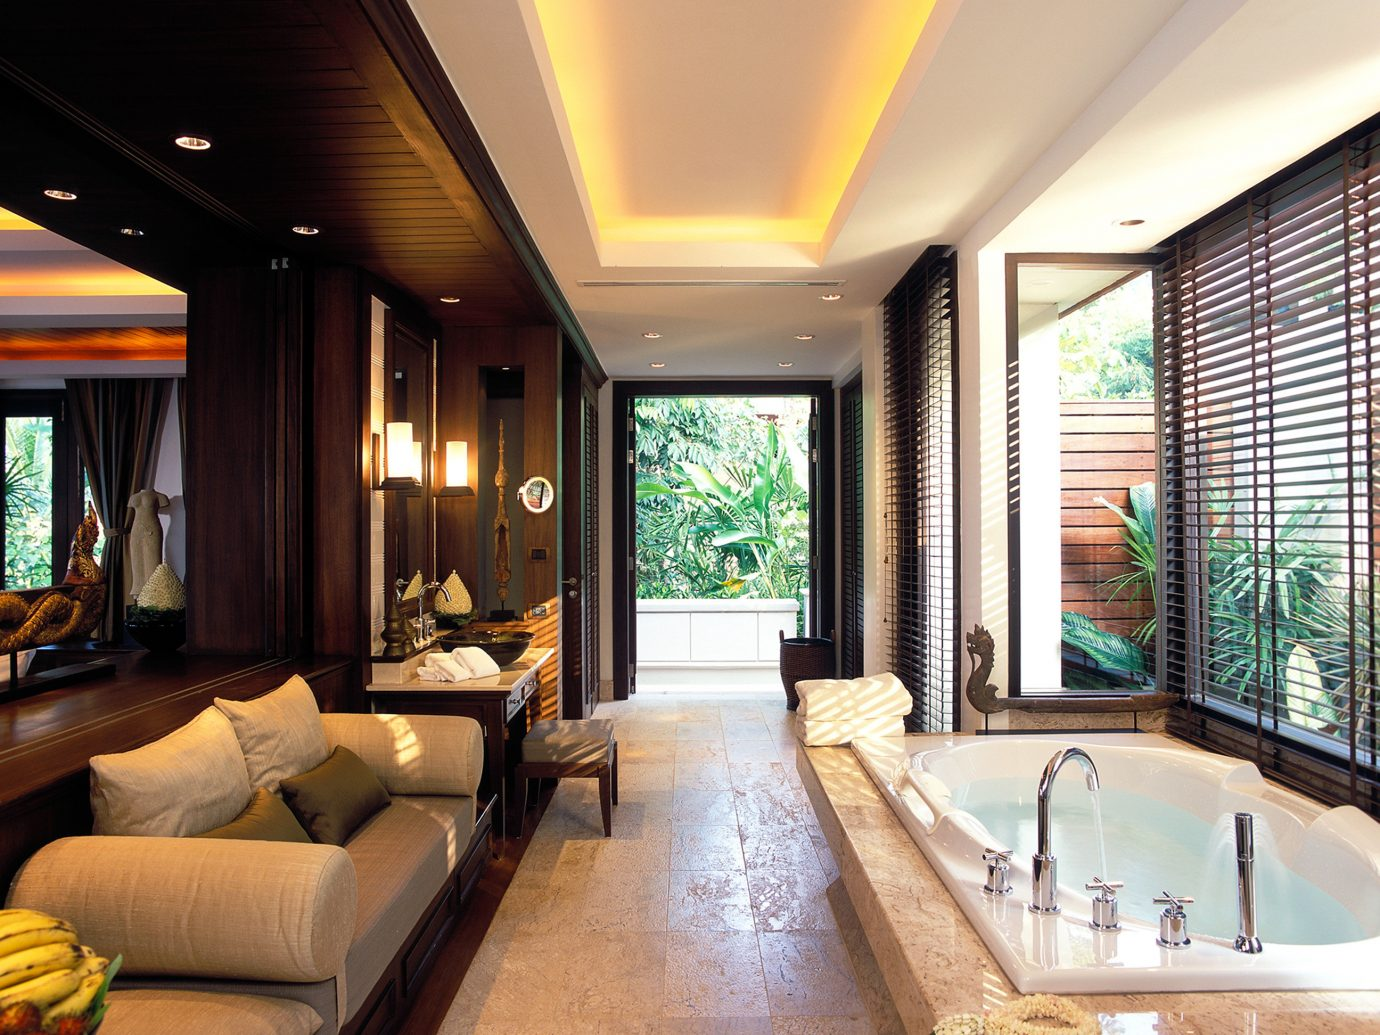 Bath Beach Elegant Hip Hotels Luxury Modern Phuket Thailand indoor window Living sofa floor room ceiling property estate swimming pool Suite condominium living room home interior design Resort real estate mansion furniture Villa Design Lobby decorated stone